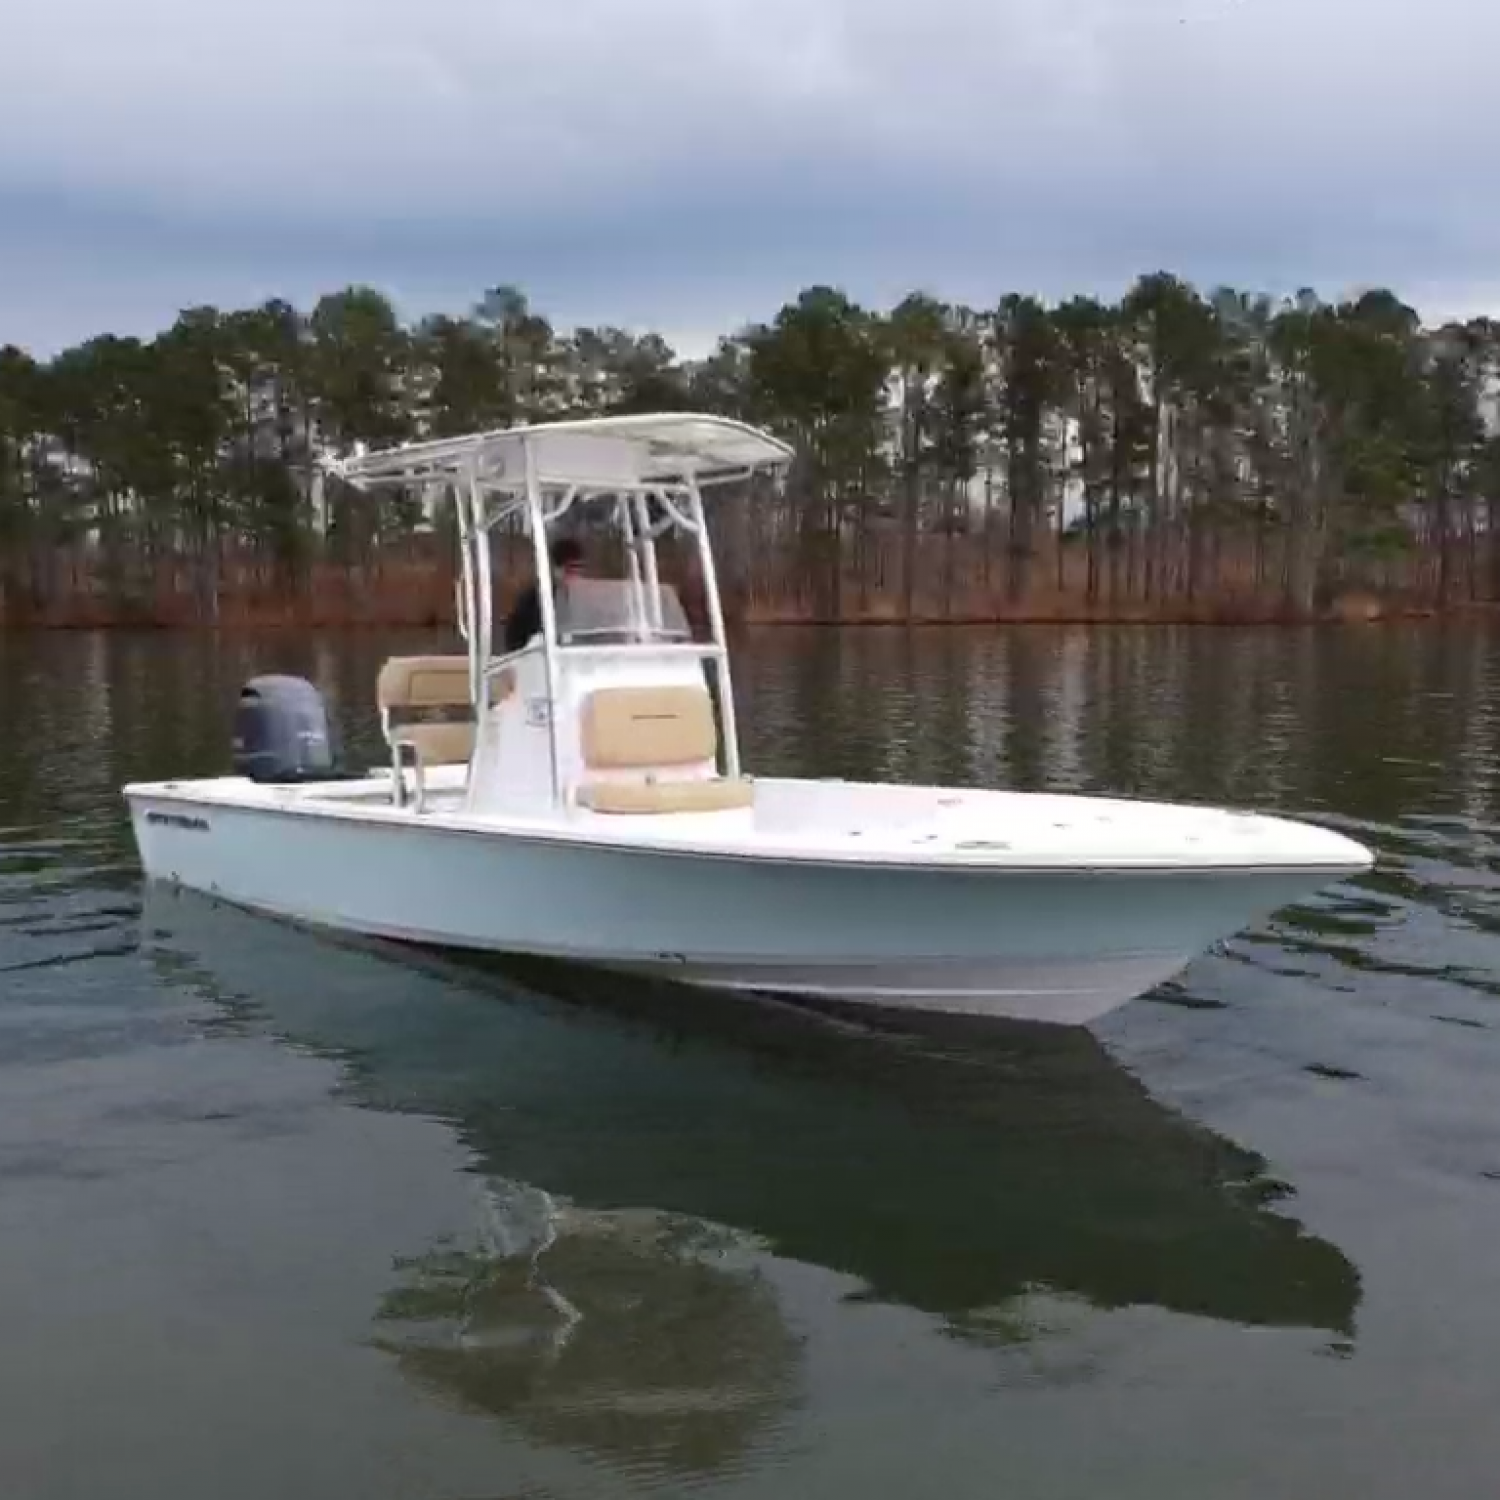 Title: Cold Lake Day - On board their Sportsman Tournament 234 SBX Bay Boat - Location: Lake Oconee. Participating in the Photo Contest #SportsmanFebruary2021